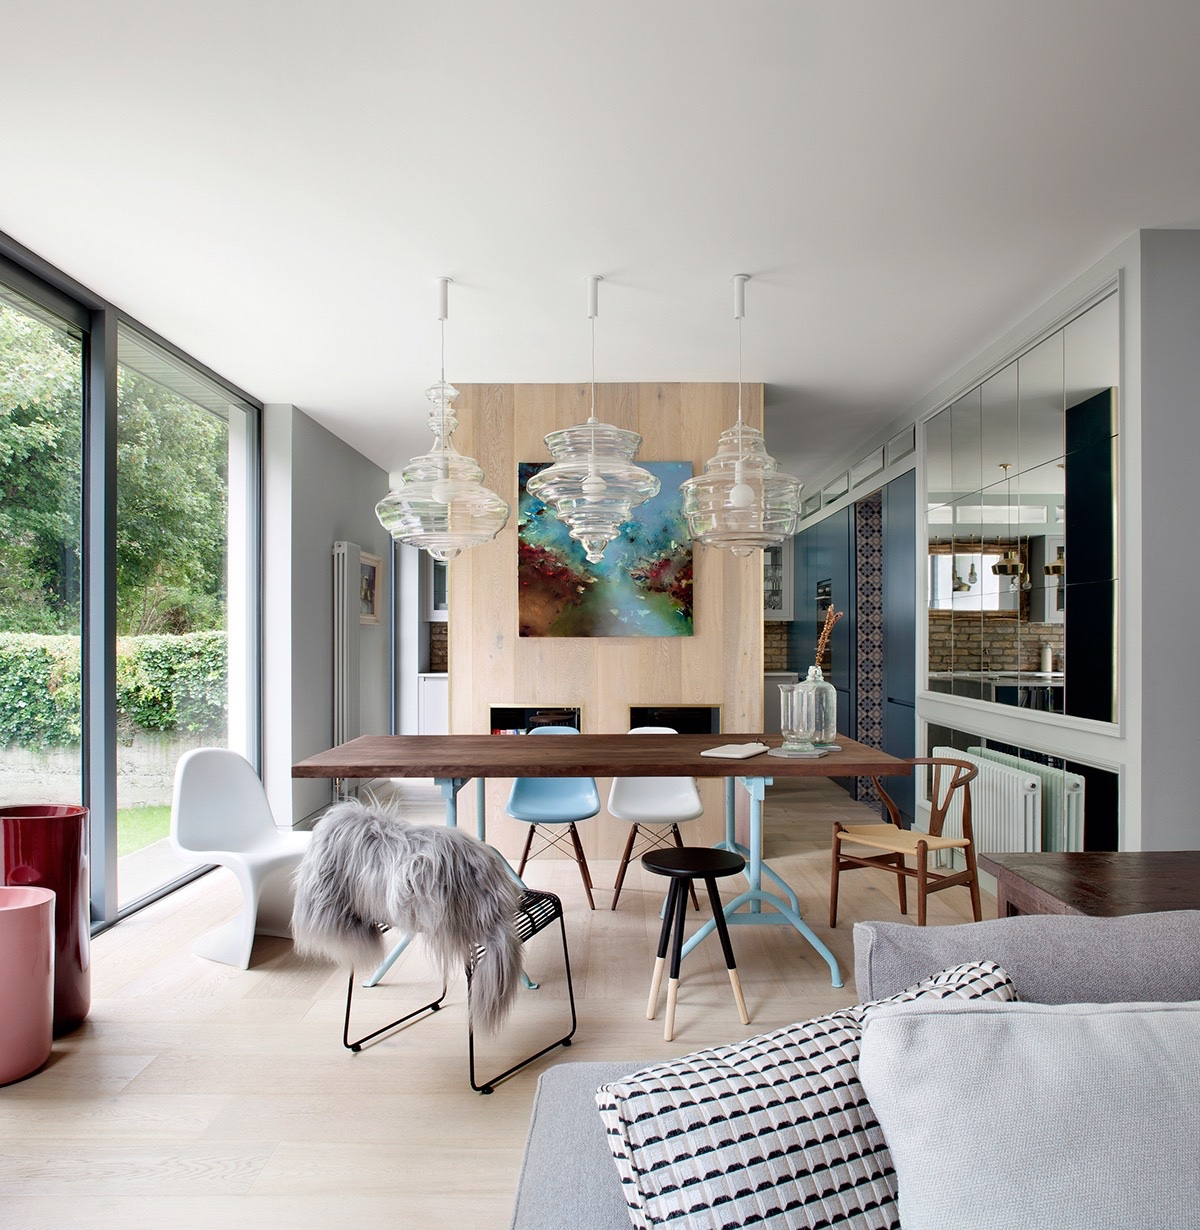 64 Modern Dining Room Ideas And Designs: Modern Dining Room Designs Combined With Scandinavian